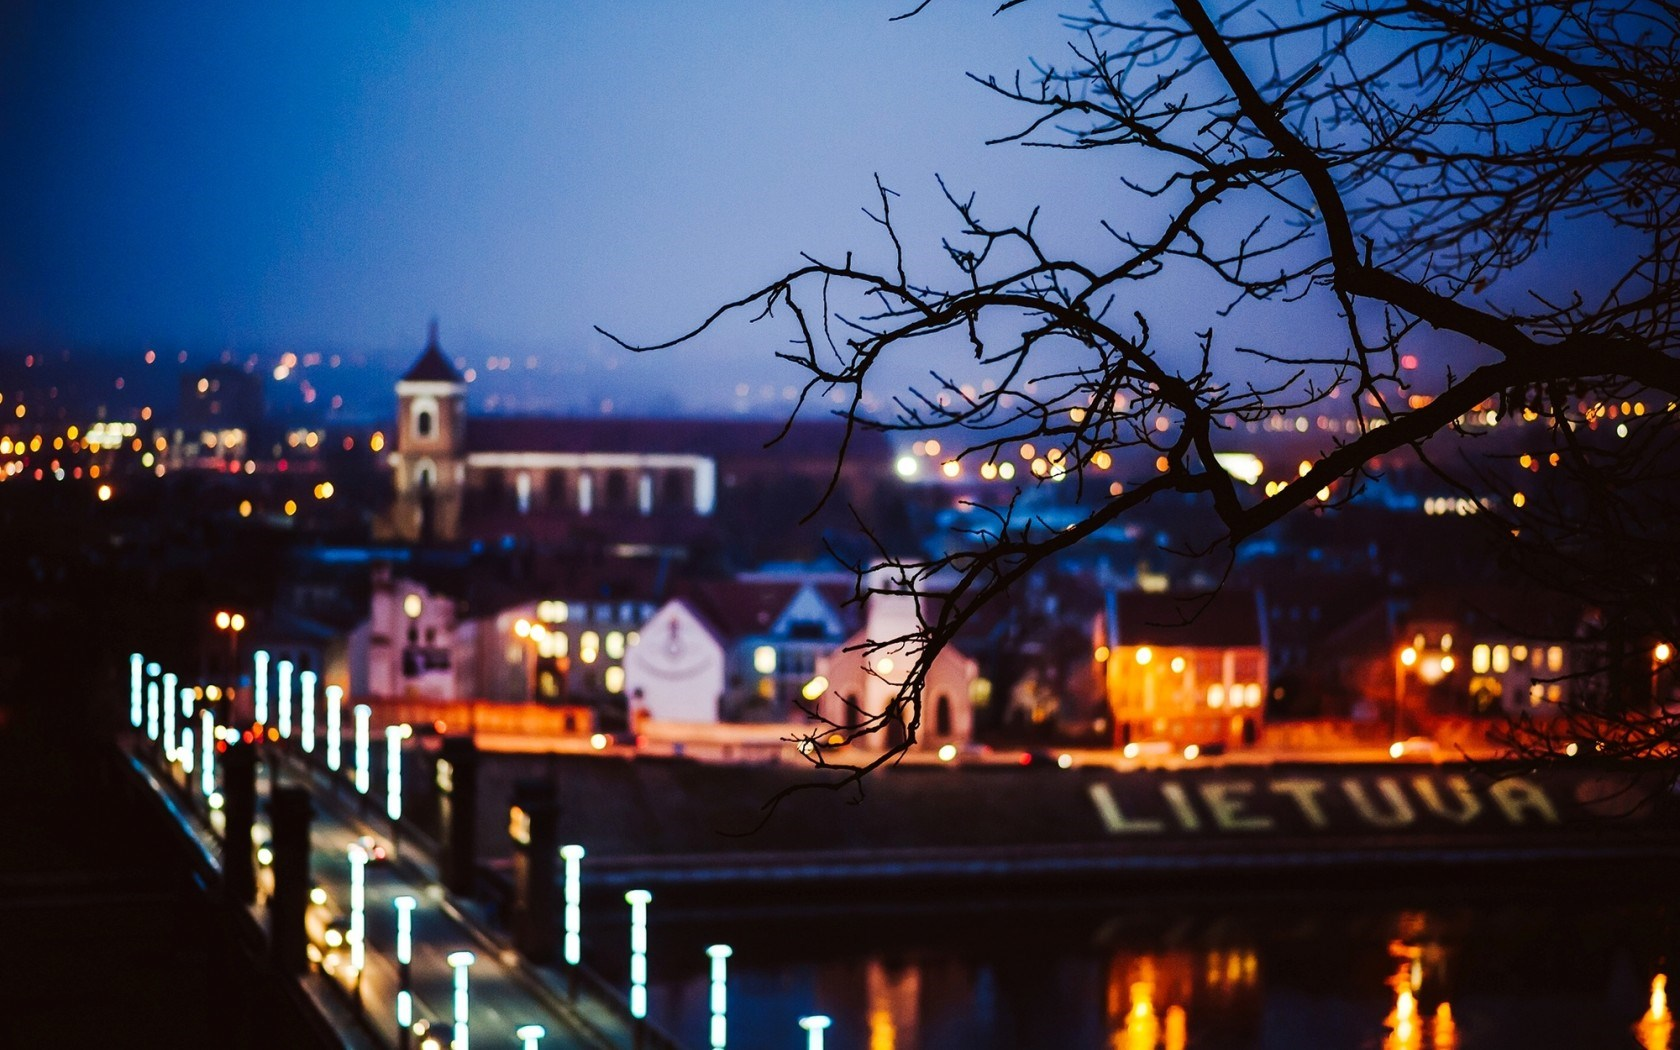 Kaunas Lietuva Lithuania City Bridge Night Lights